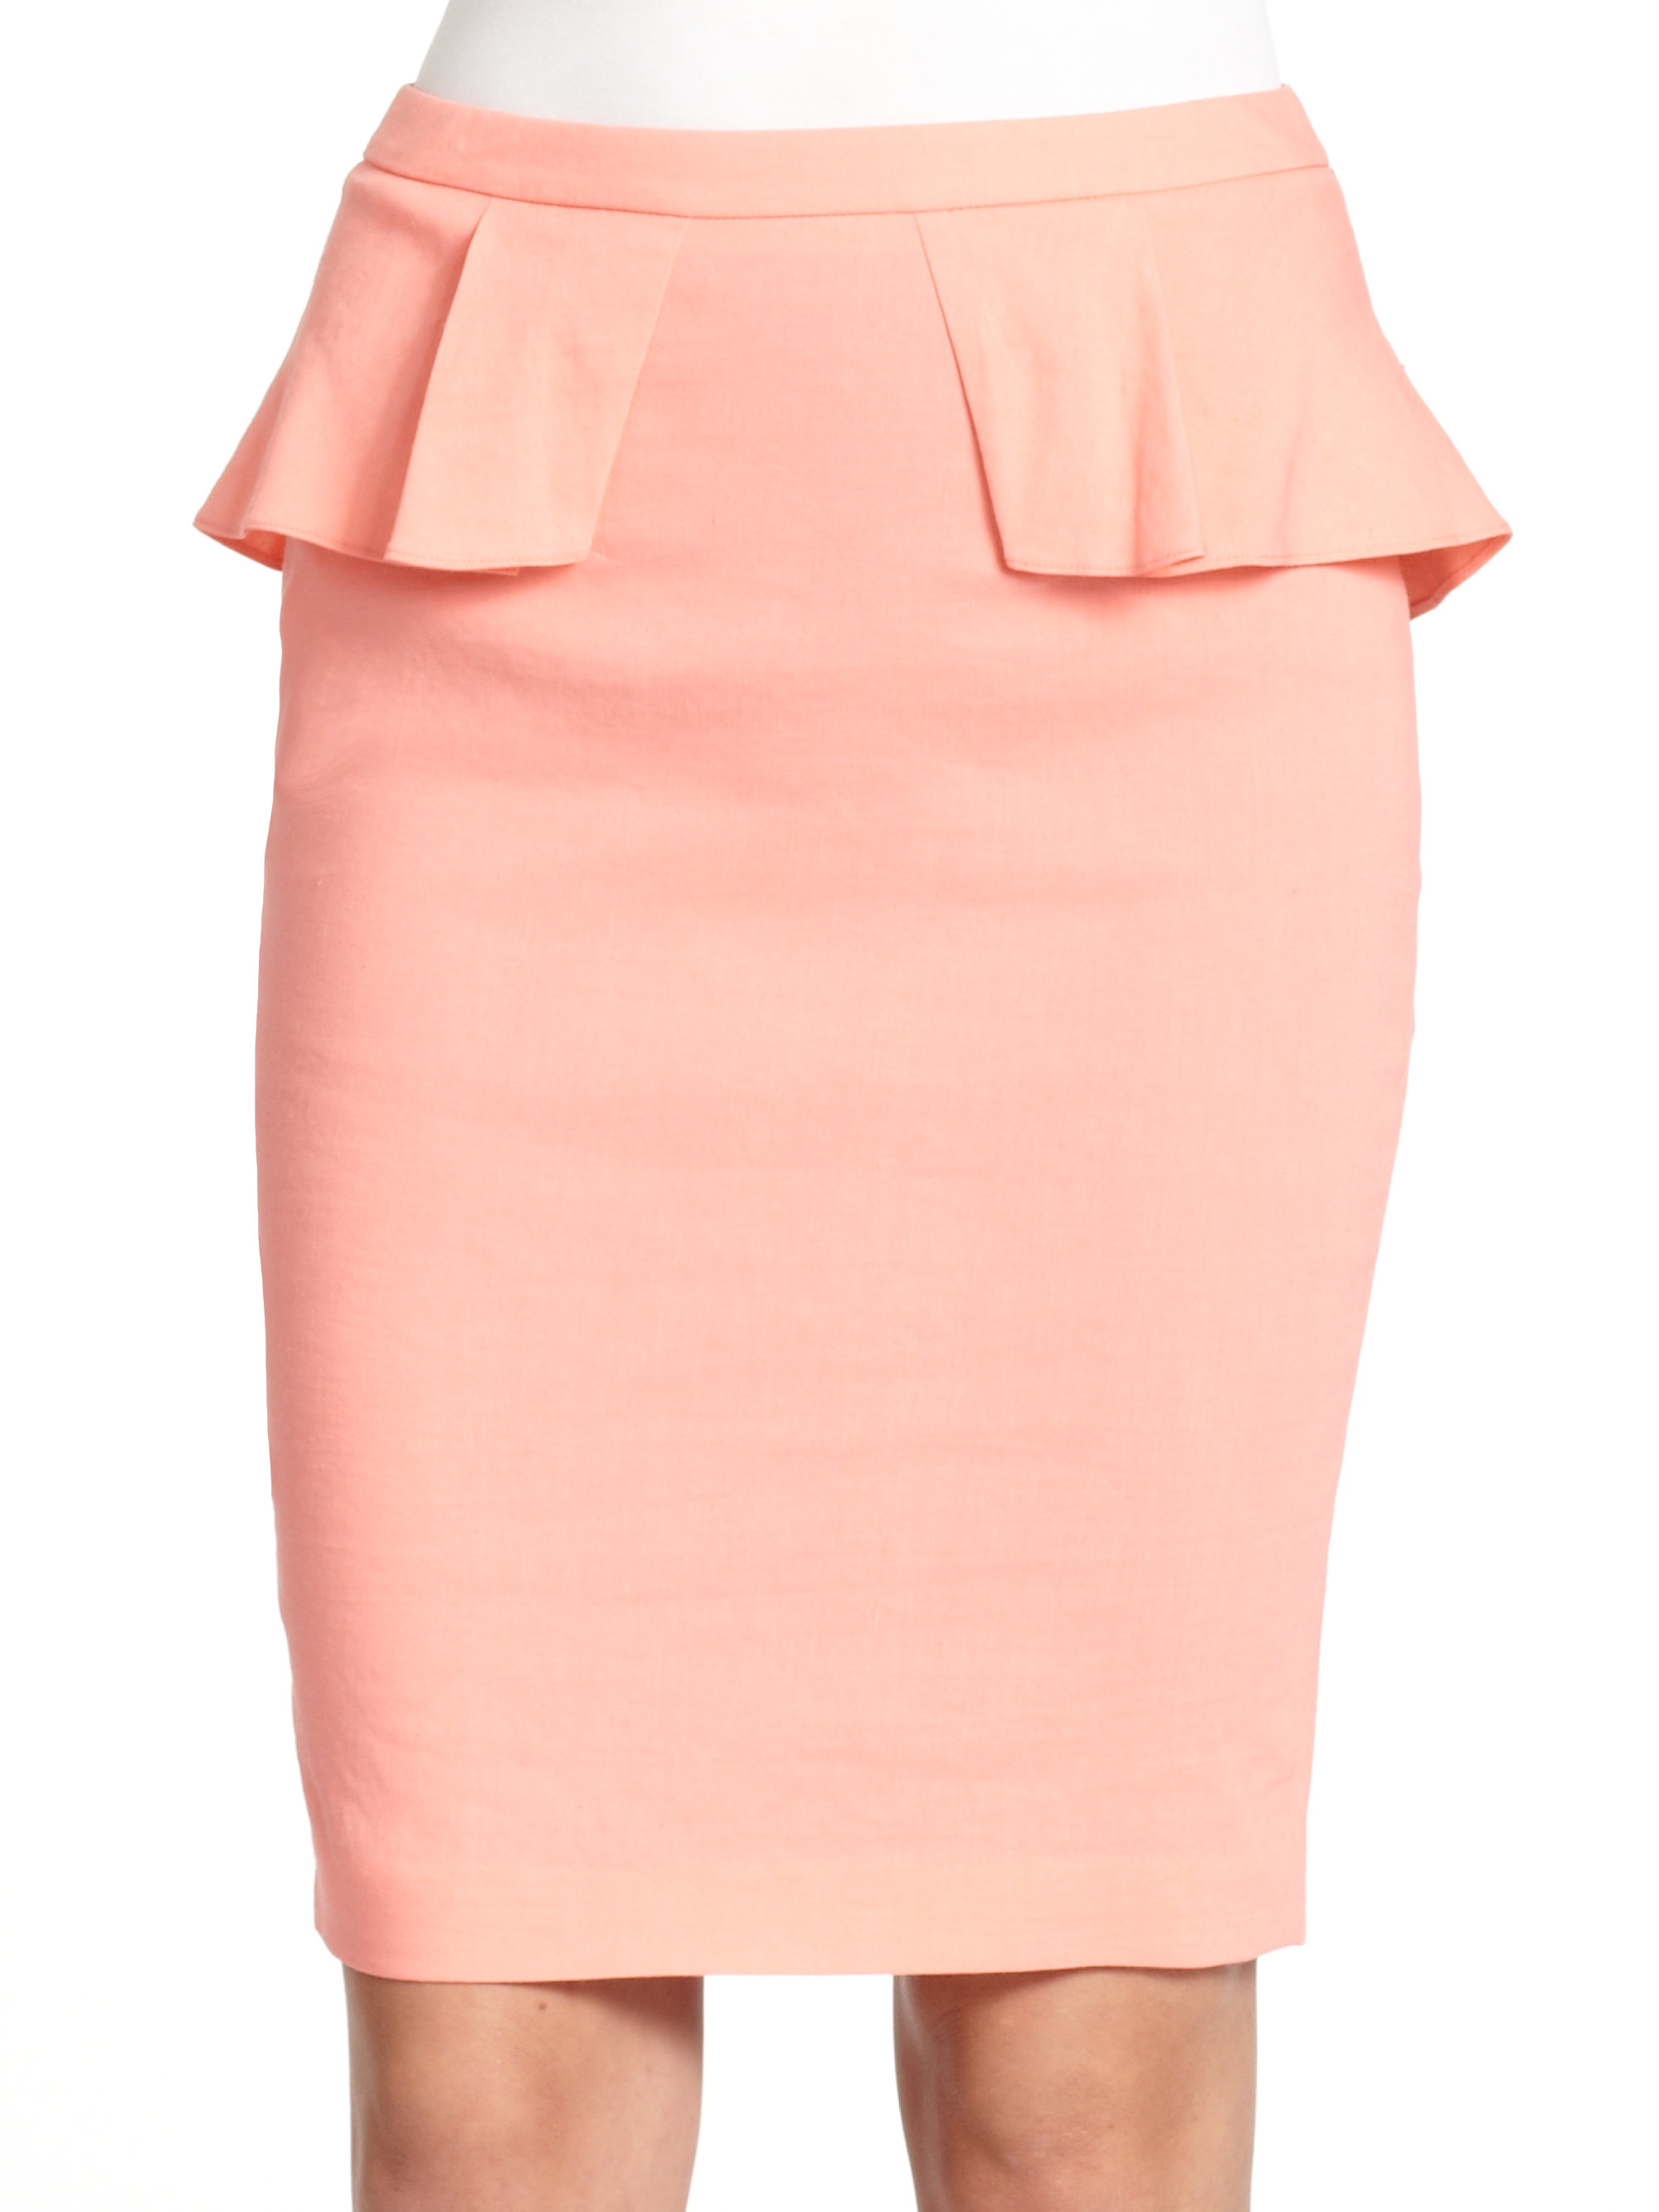 Peach Pencil Skirt - Dress Ala